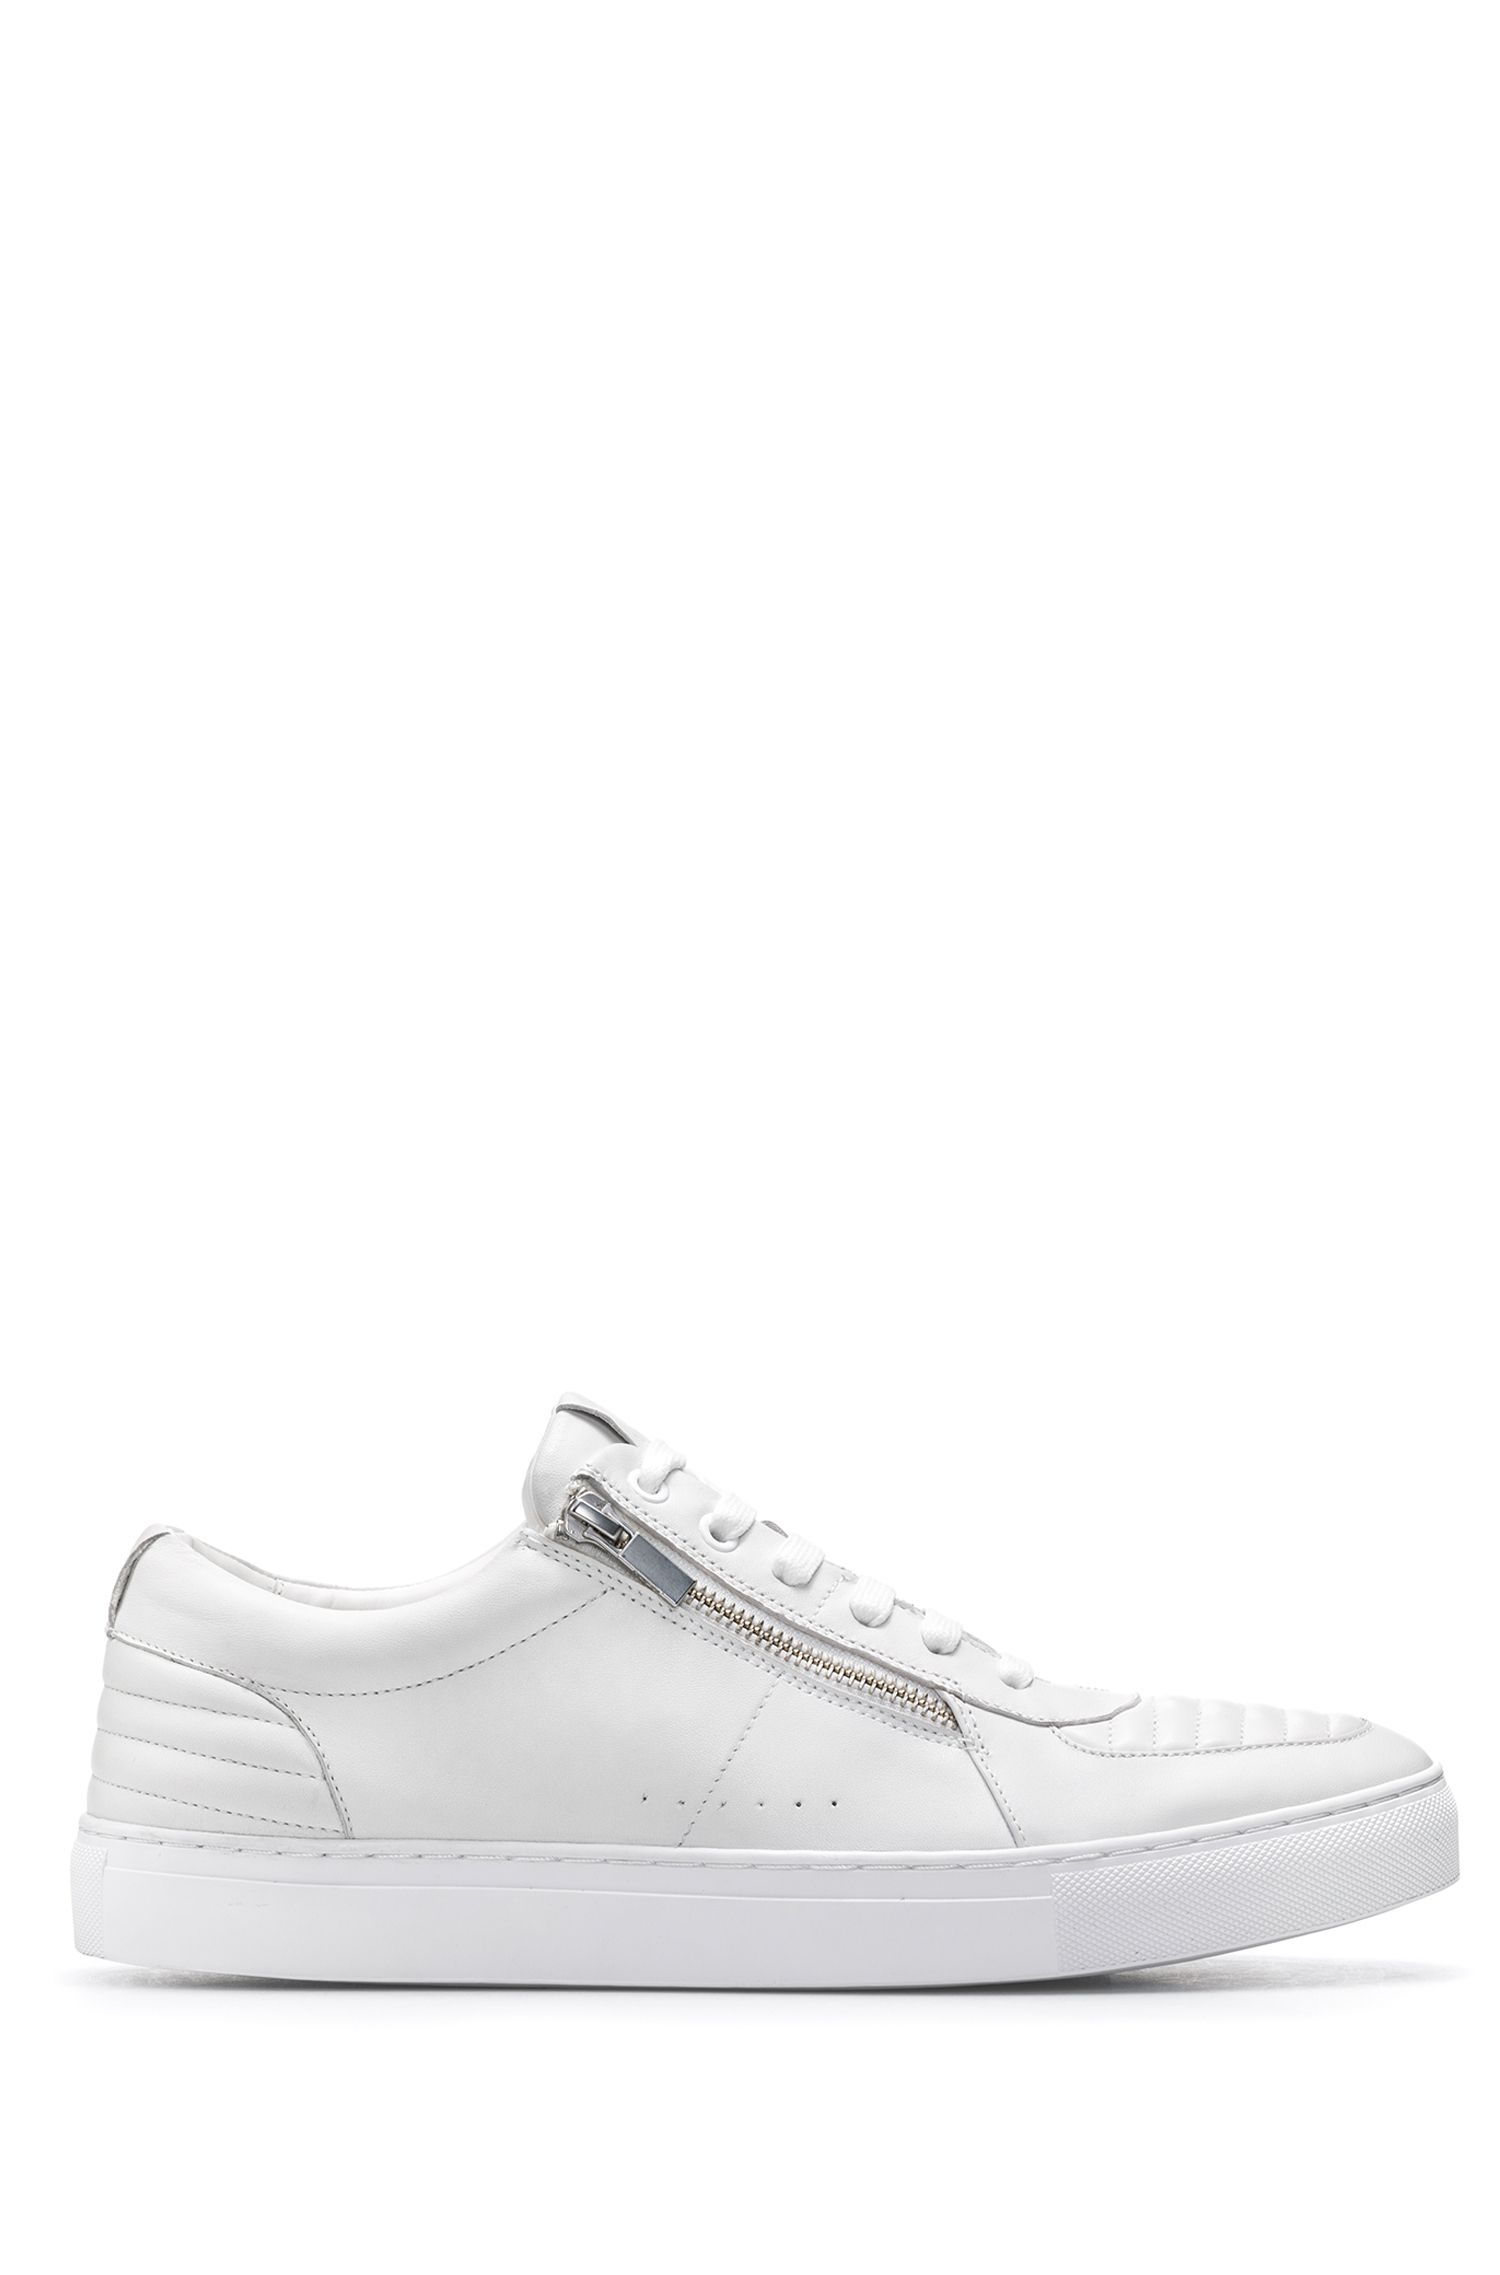 Tennis-style trainers in nappa lambskin with quilting details